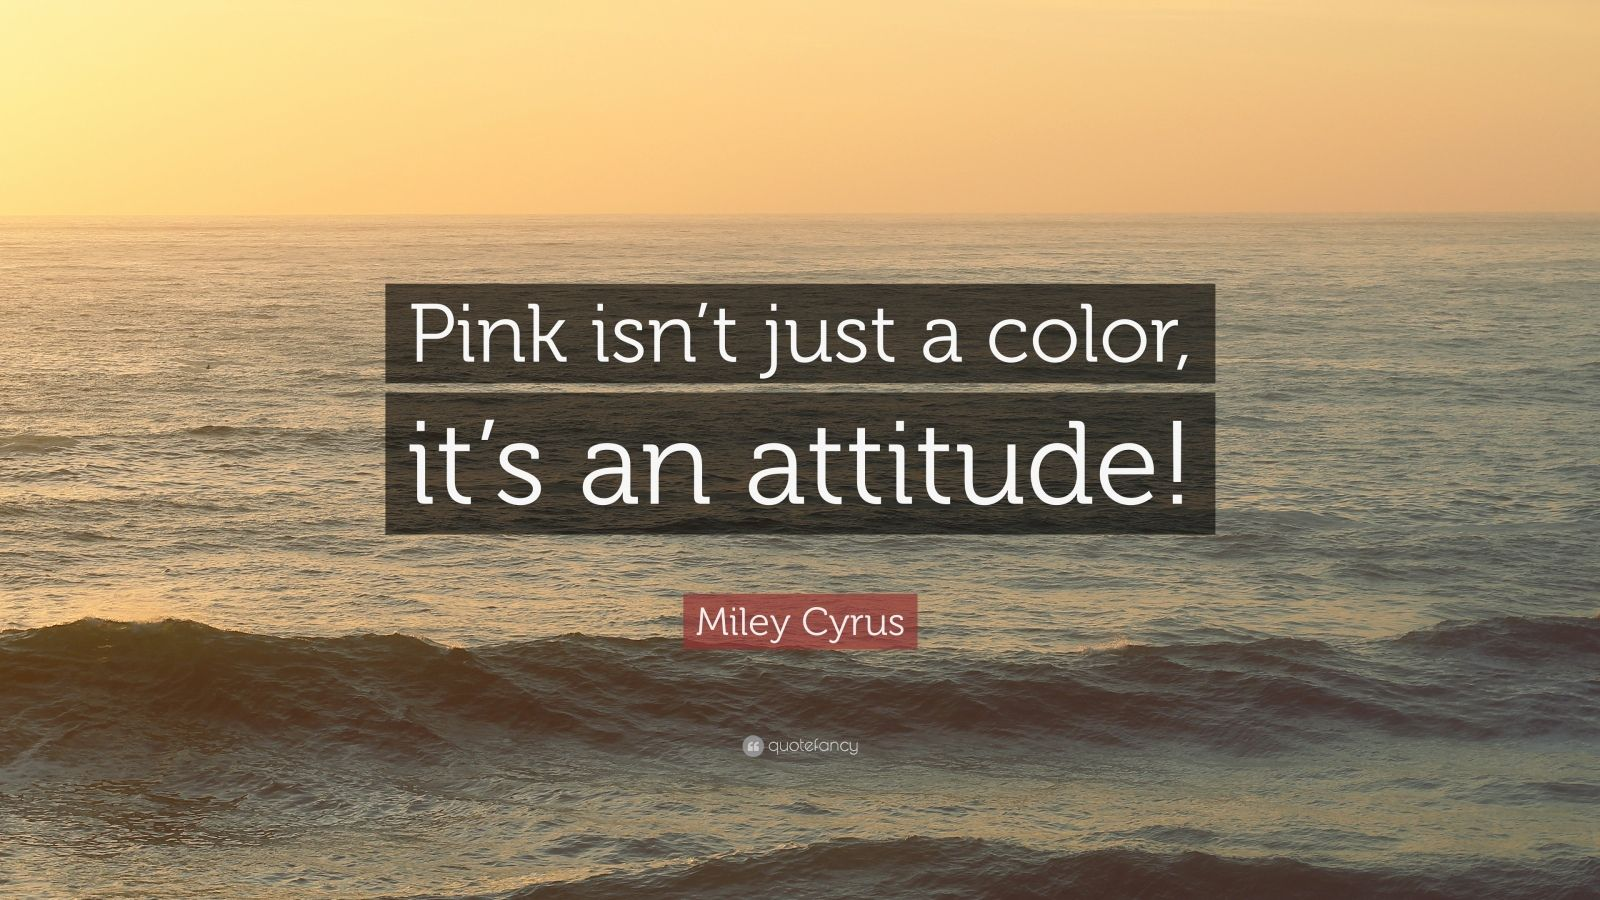 """Miley Cyrus Quote: """"Pink isn't just a color, it's an attitude!"""""""